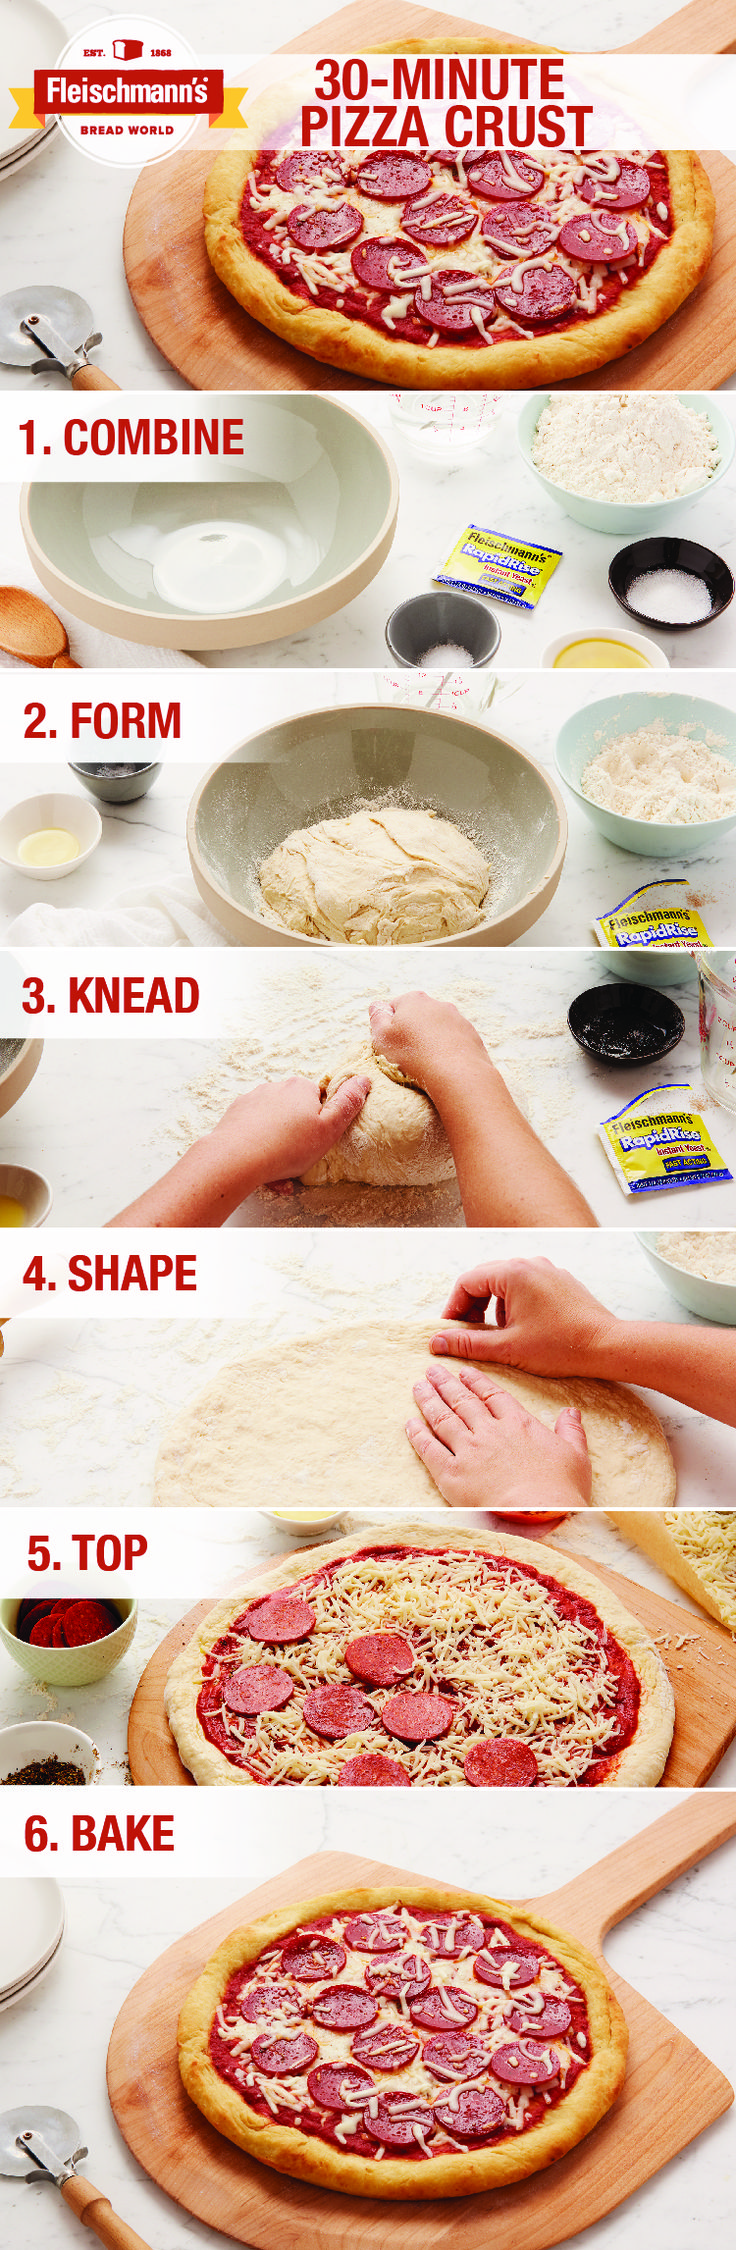 Making homemade pizza from scratch? Here's how to do it! This 30 Minute Pizza Crust recipe is the perfect dough to have dinner ready in almost no time.